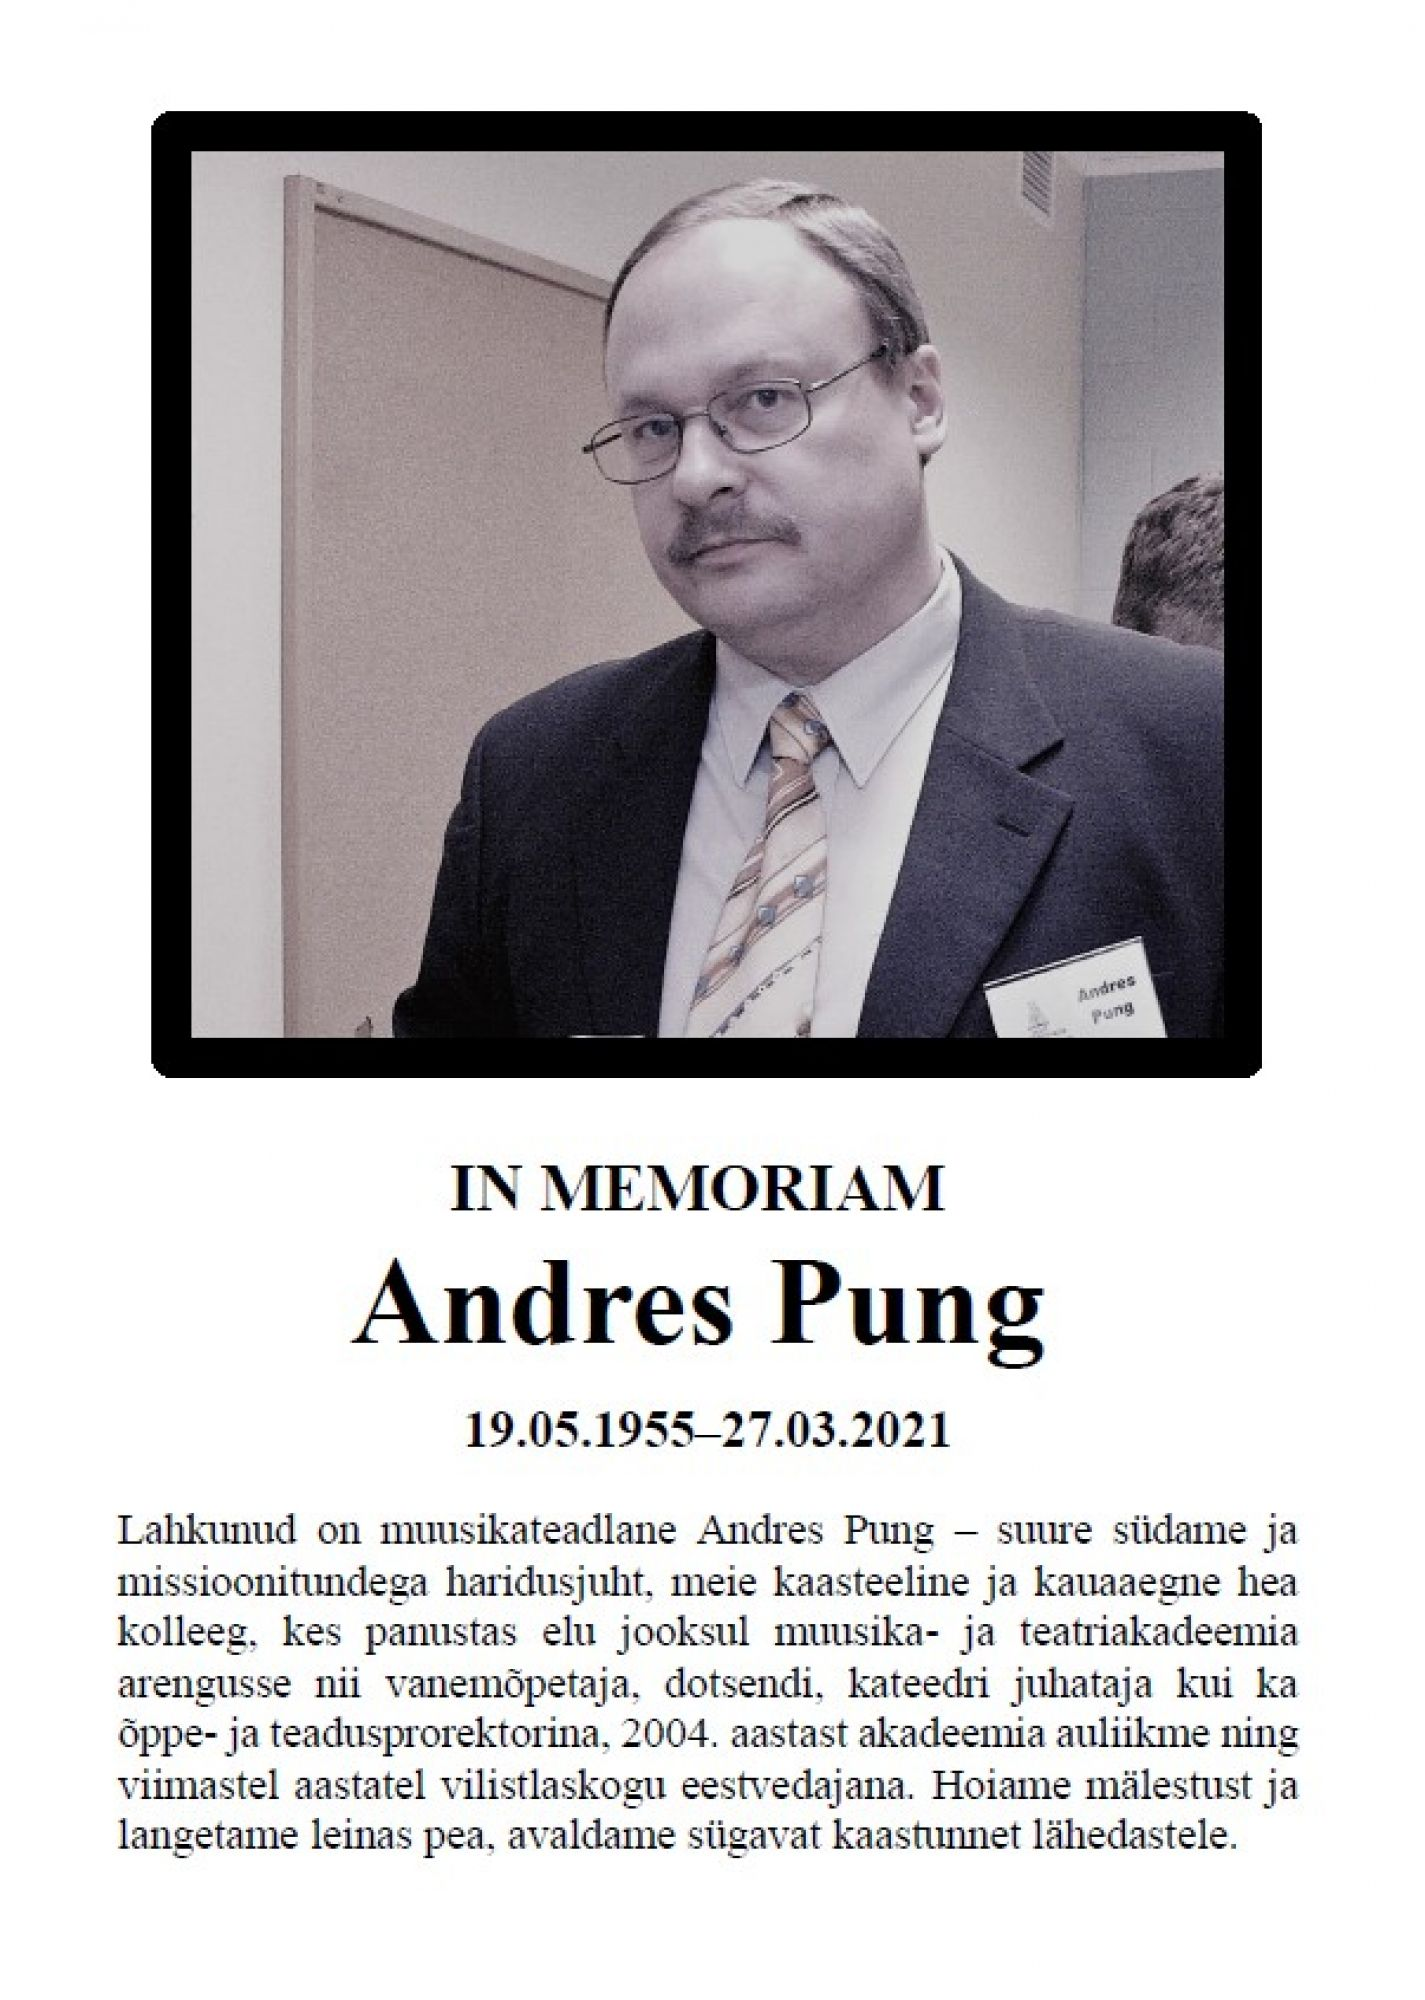 Andres Pung